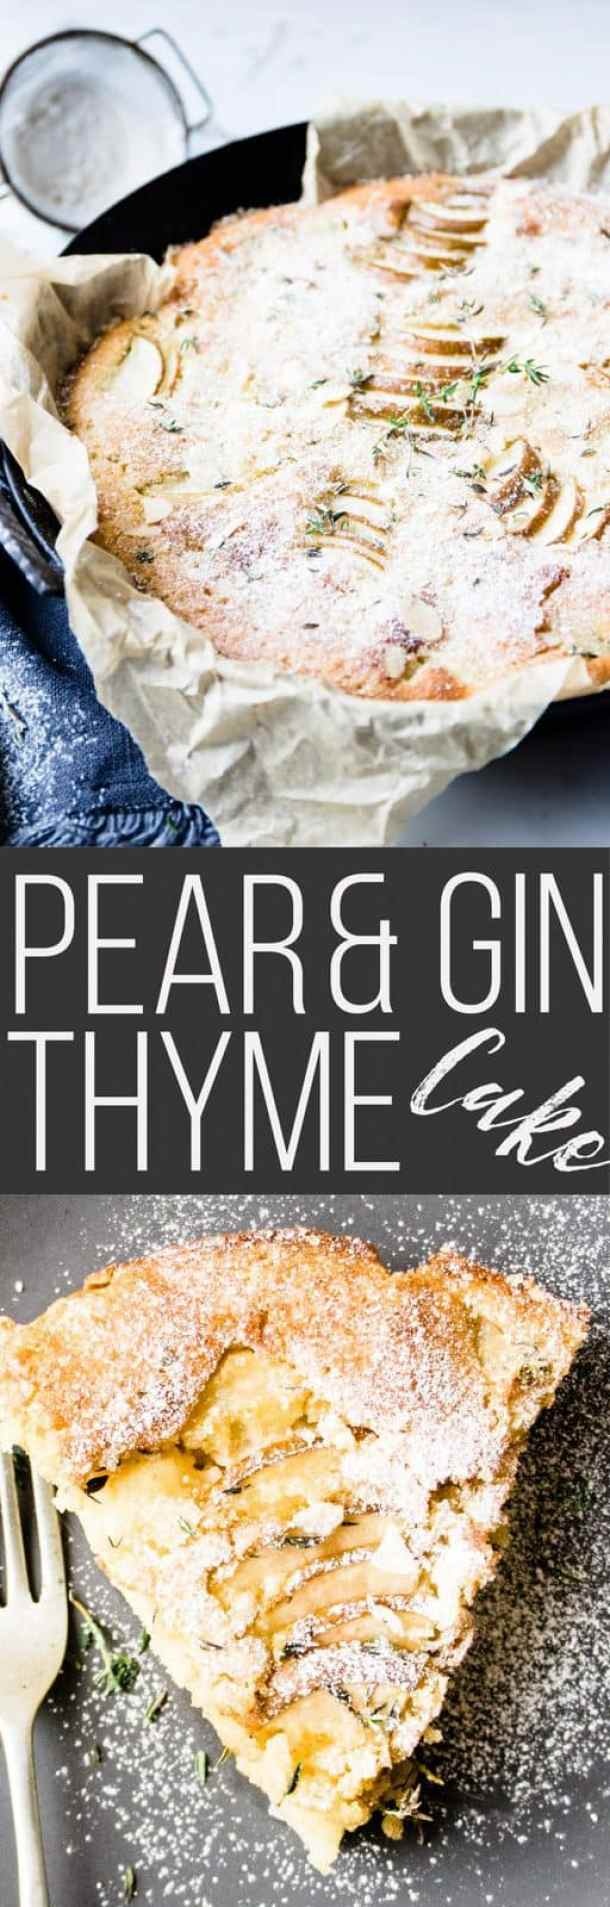 This pear thyme and gin cake is the answer to all your dessert, entertaining, brunching and snacking queries. Loaded with juicy fall pears, herby thyme and fragrant gin.